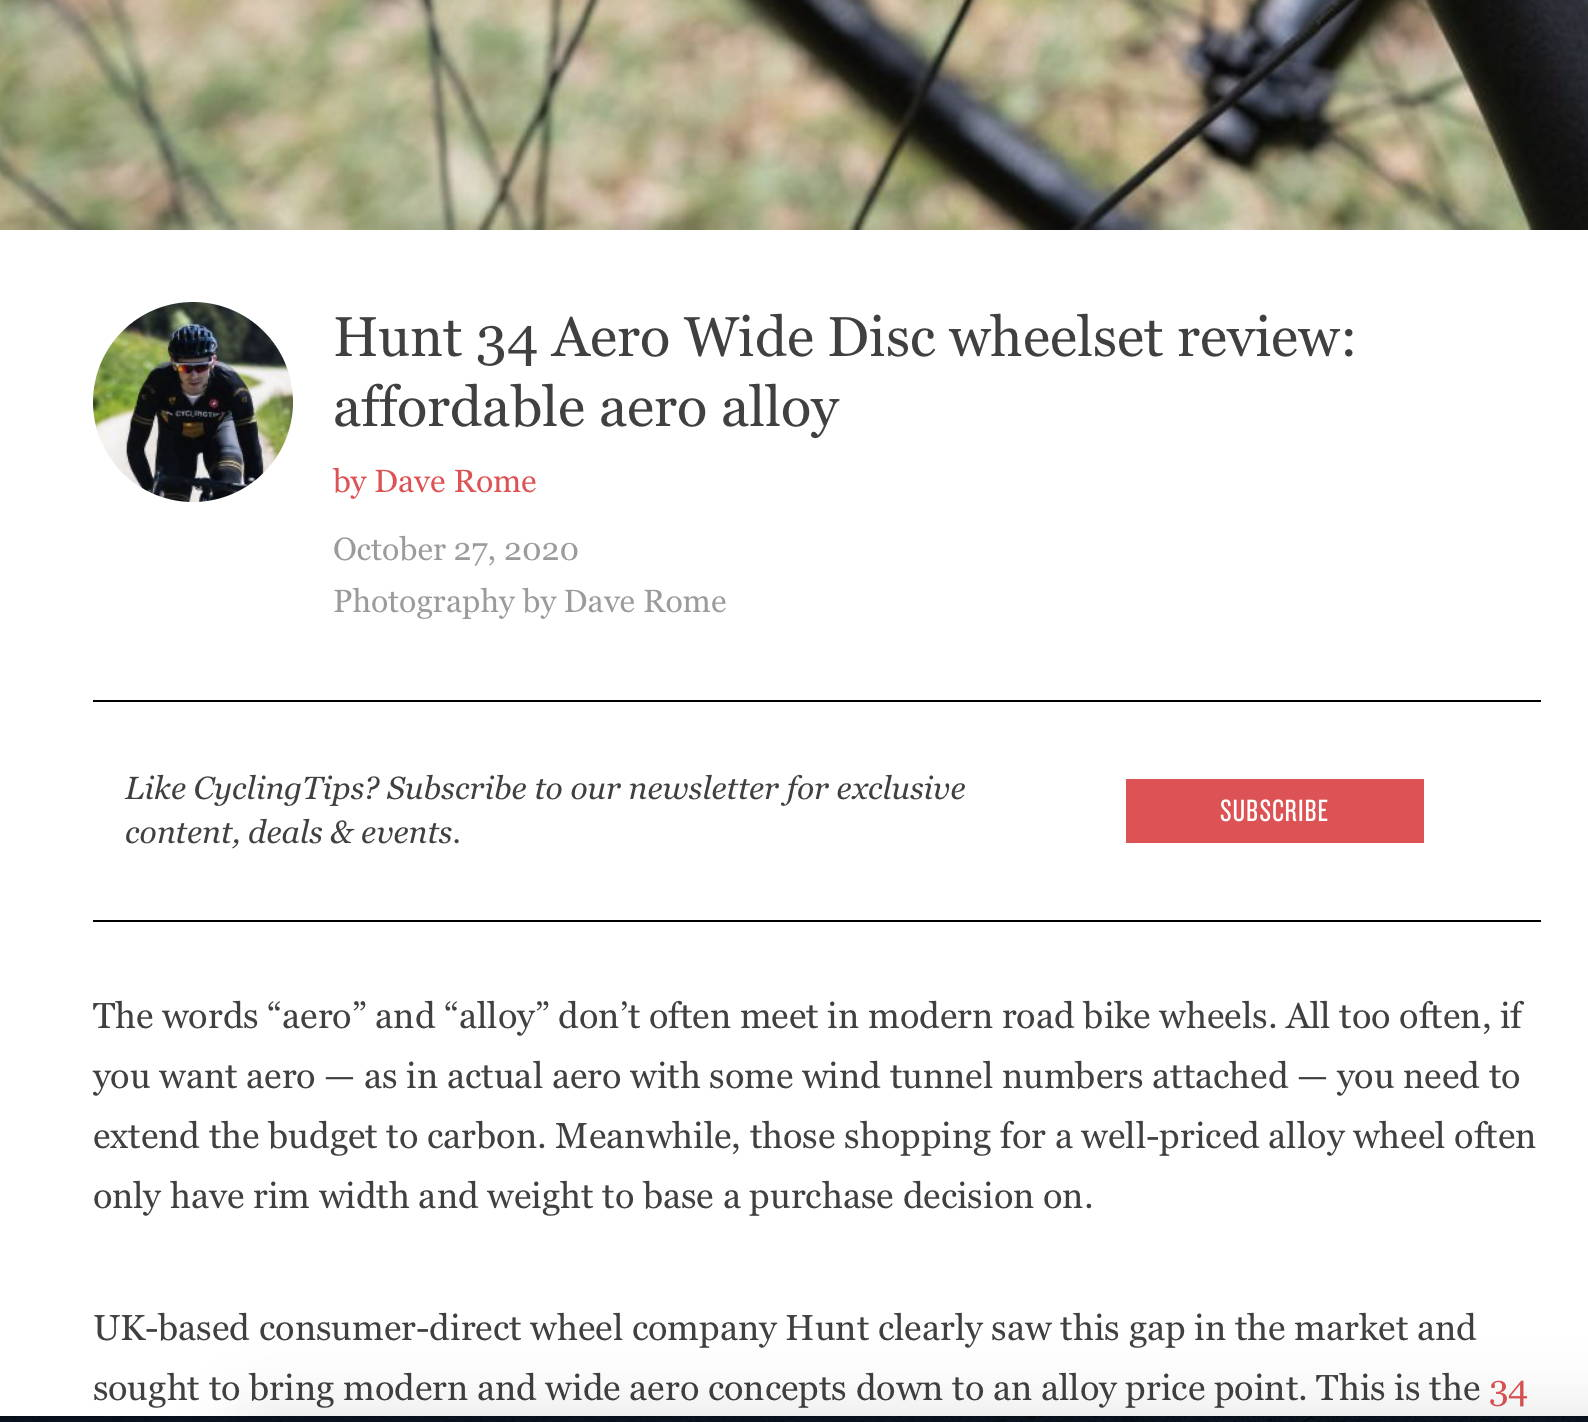 Cyclingtips.com review of HUNT 34 Aero Wide Disc Wheelset